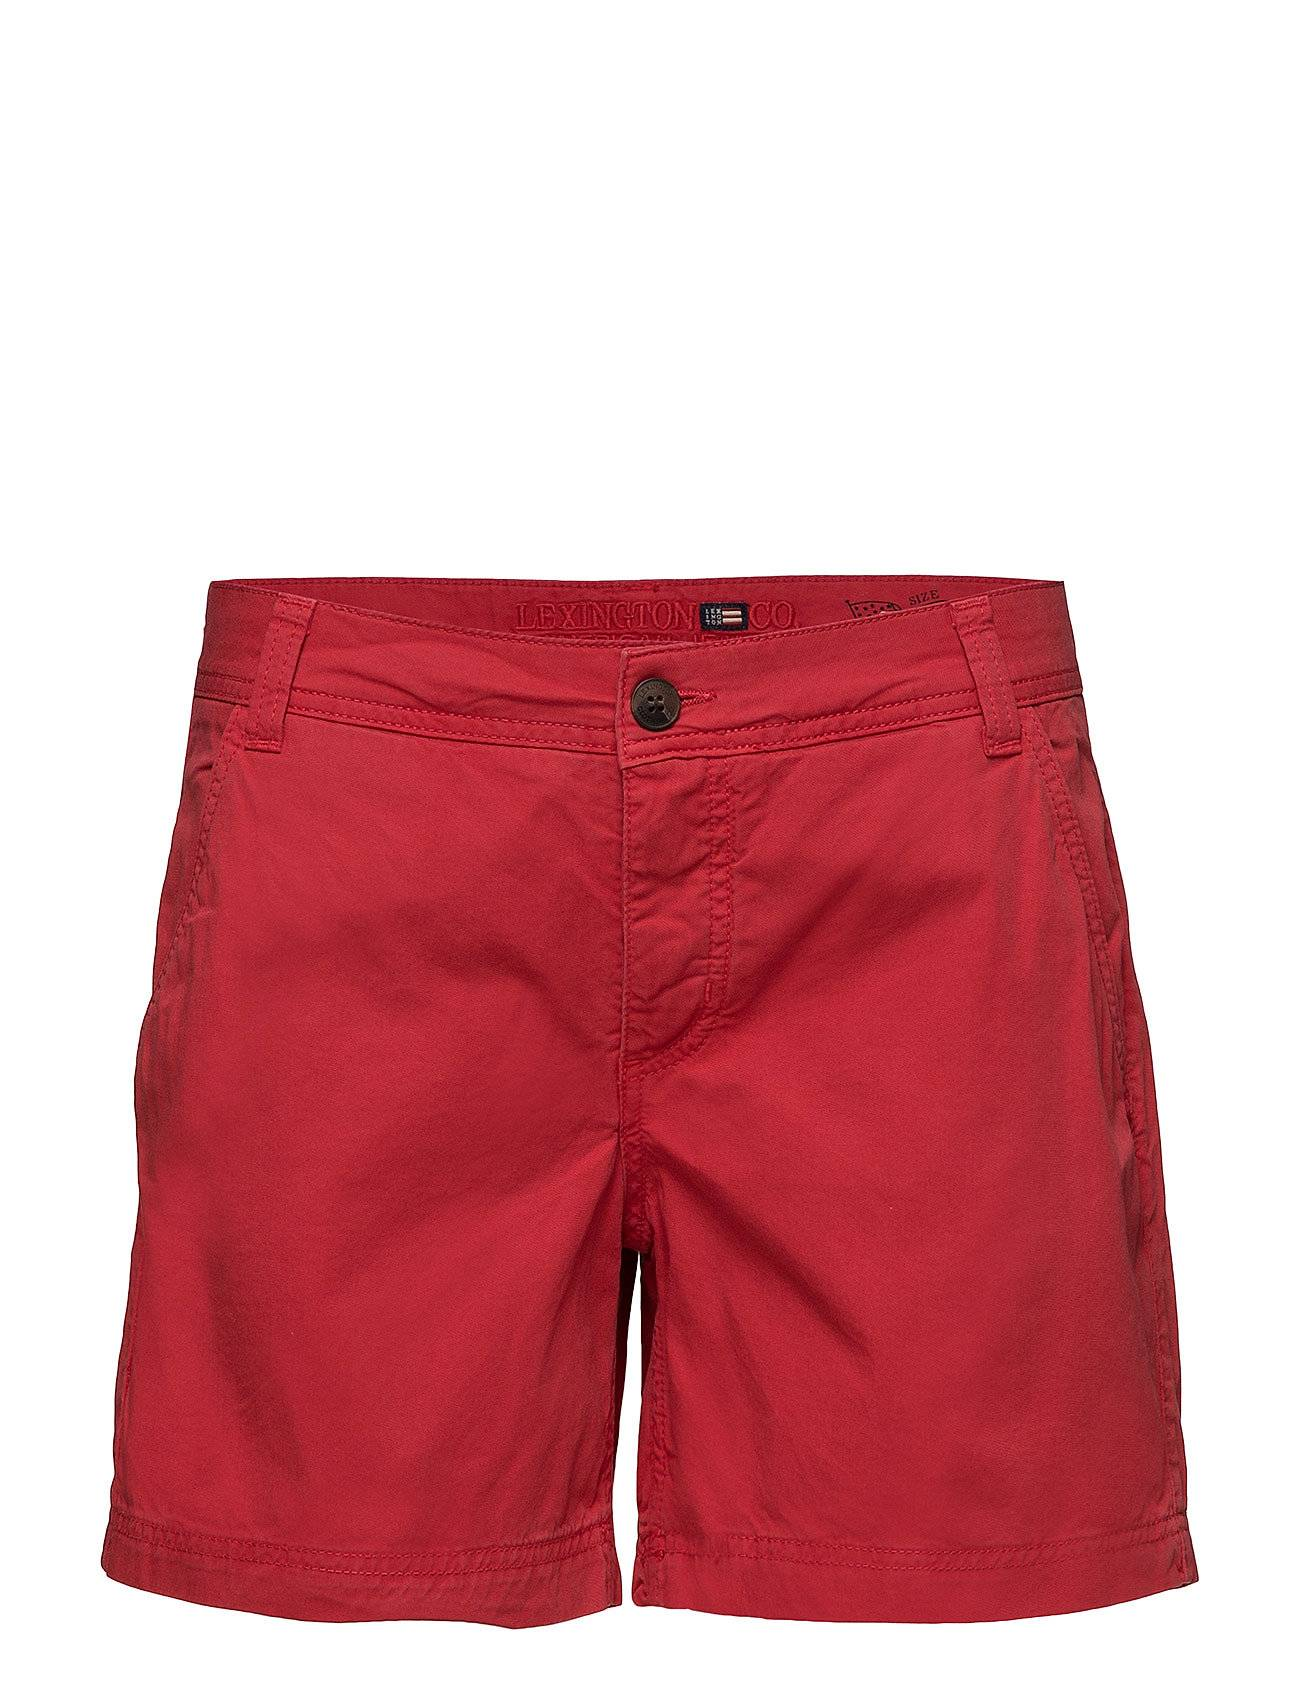 Lexington Clothing Gail Shorts